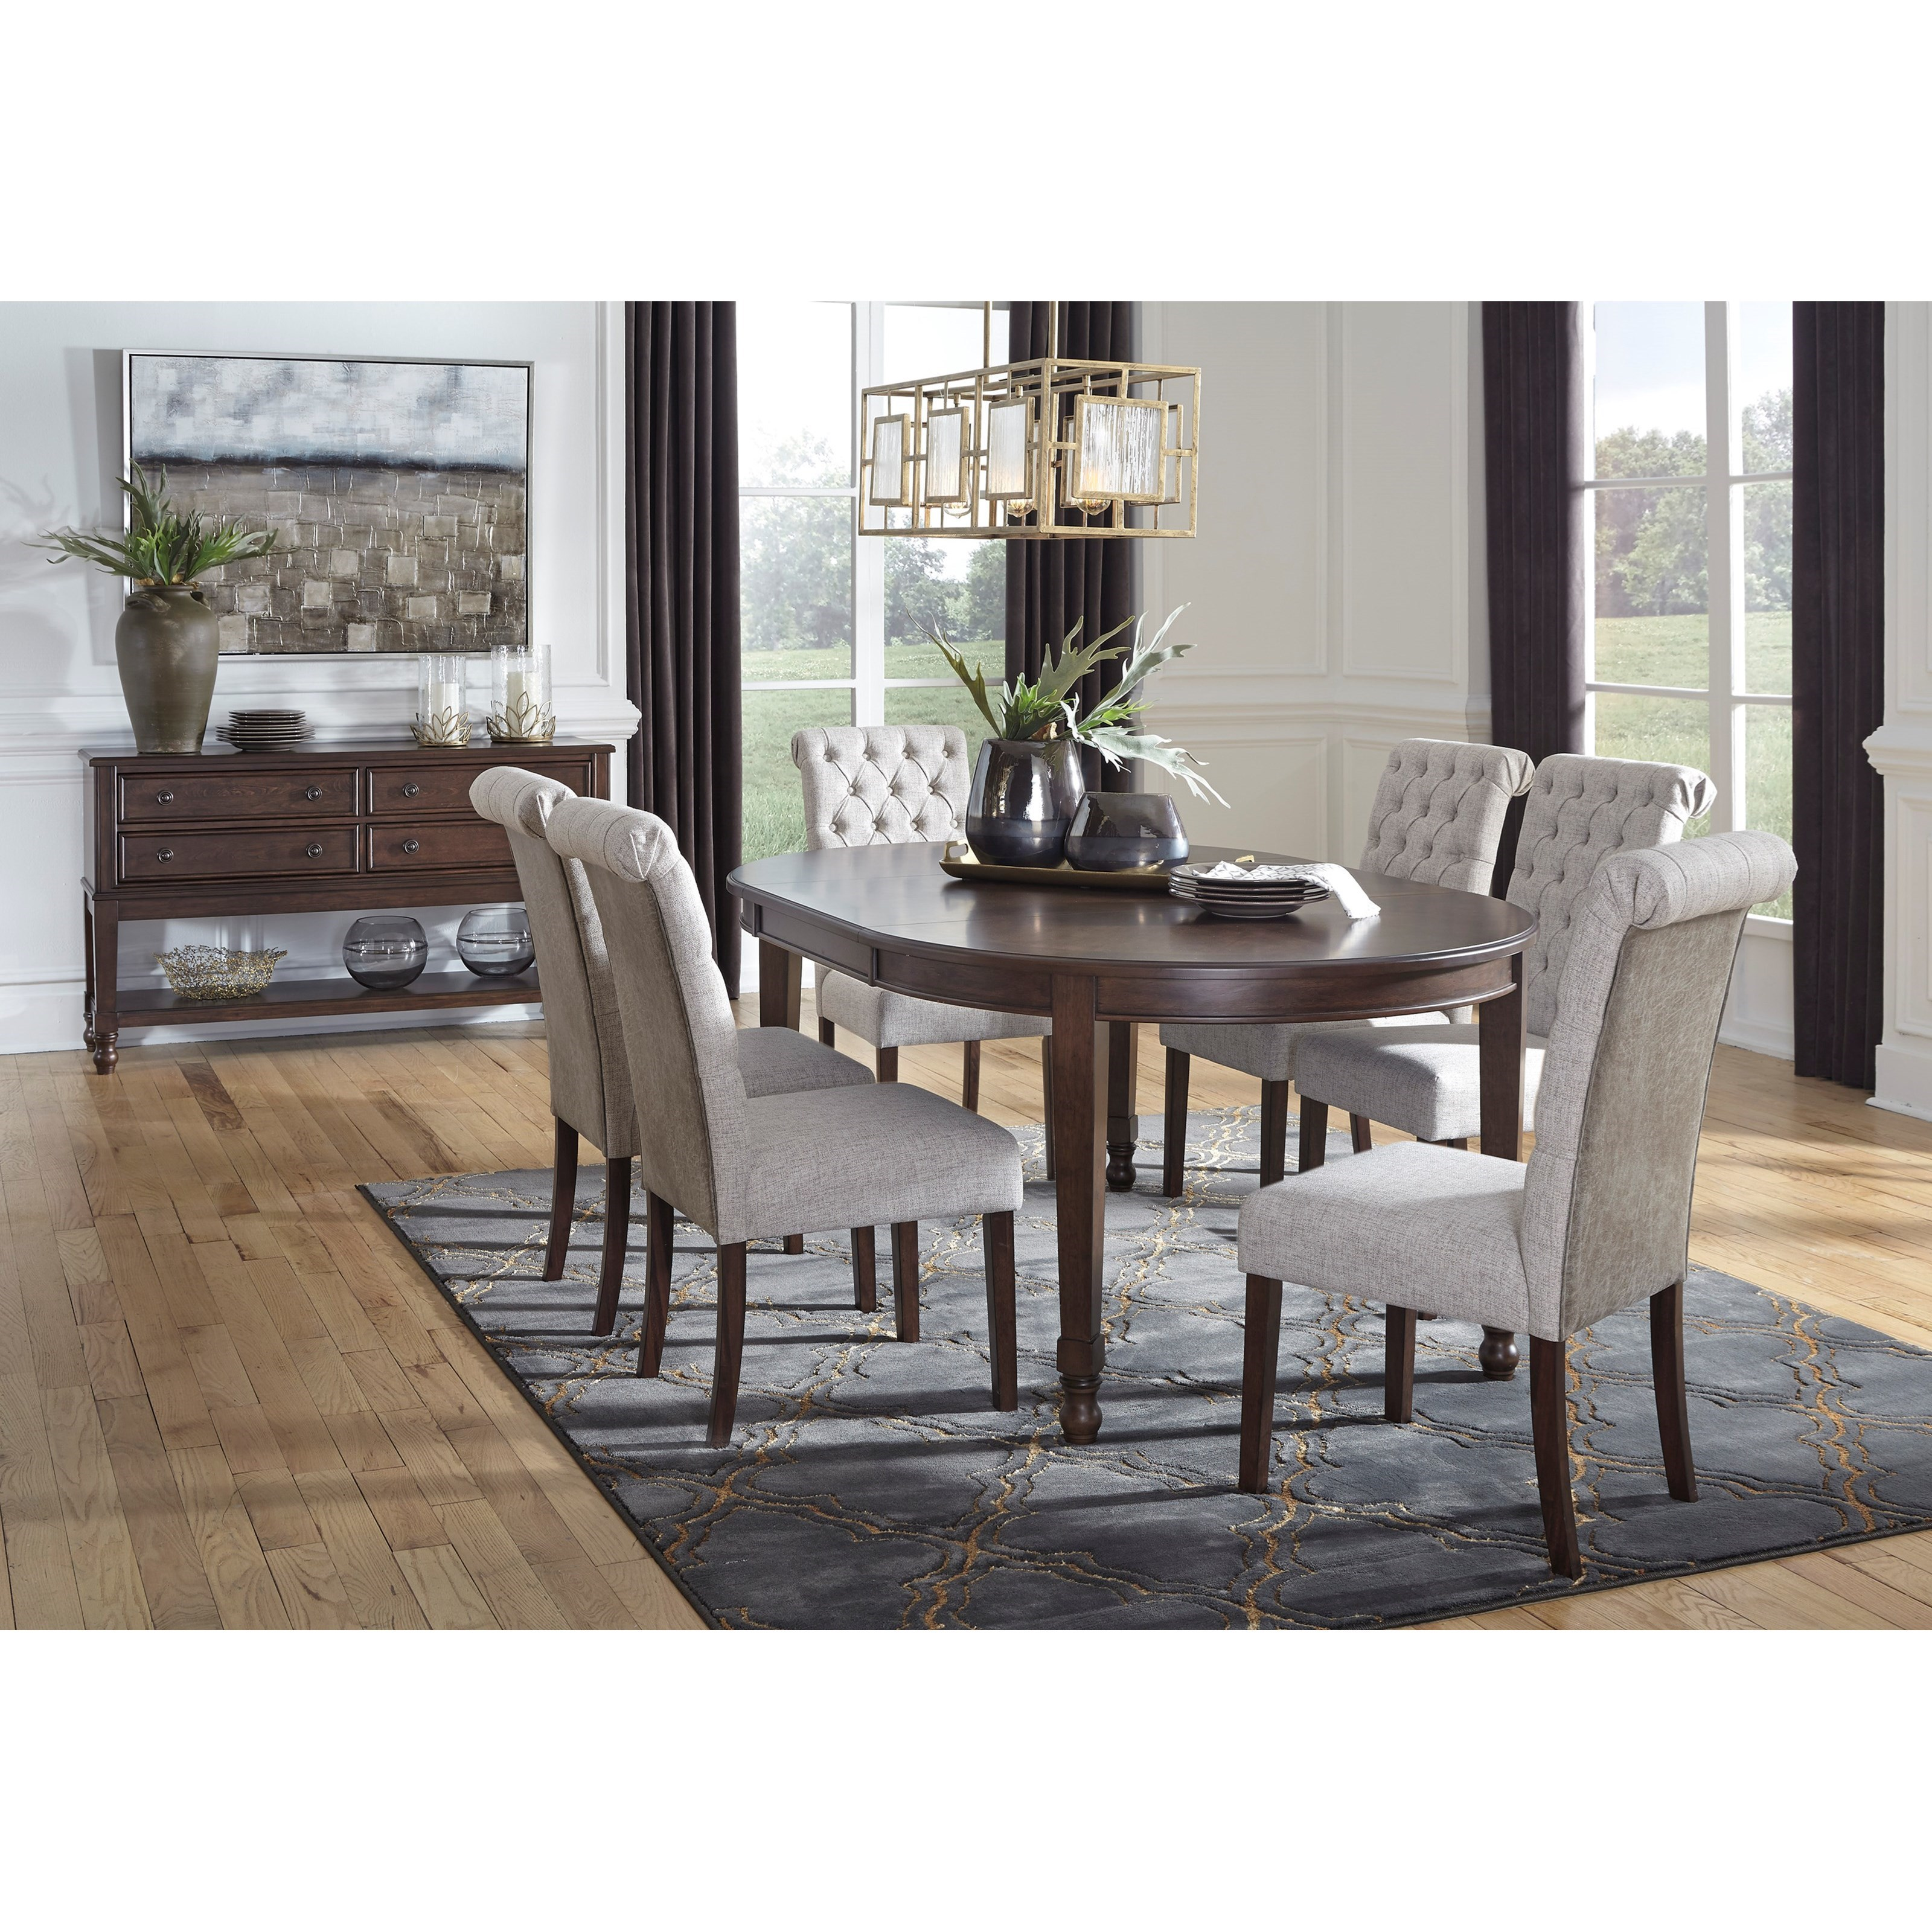 Adinton Formal Dining Room Group by Signature Design by Ashley at Simply Home by Lindy's